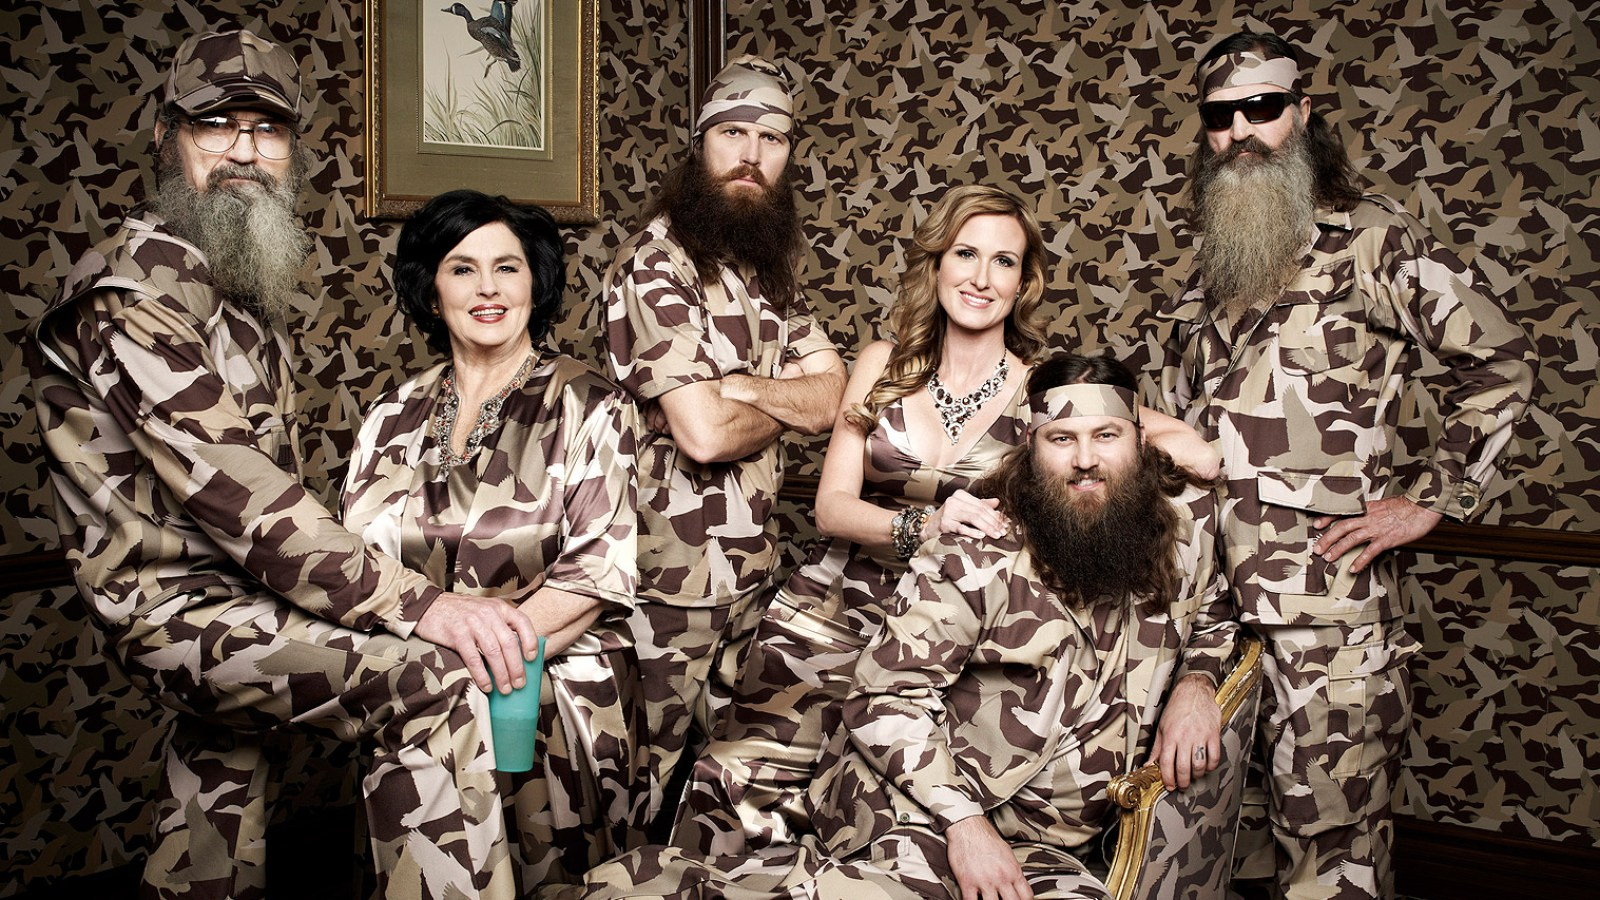 uncle si dating tips